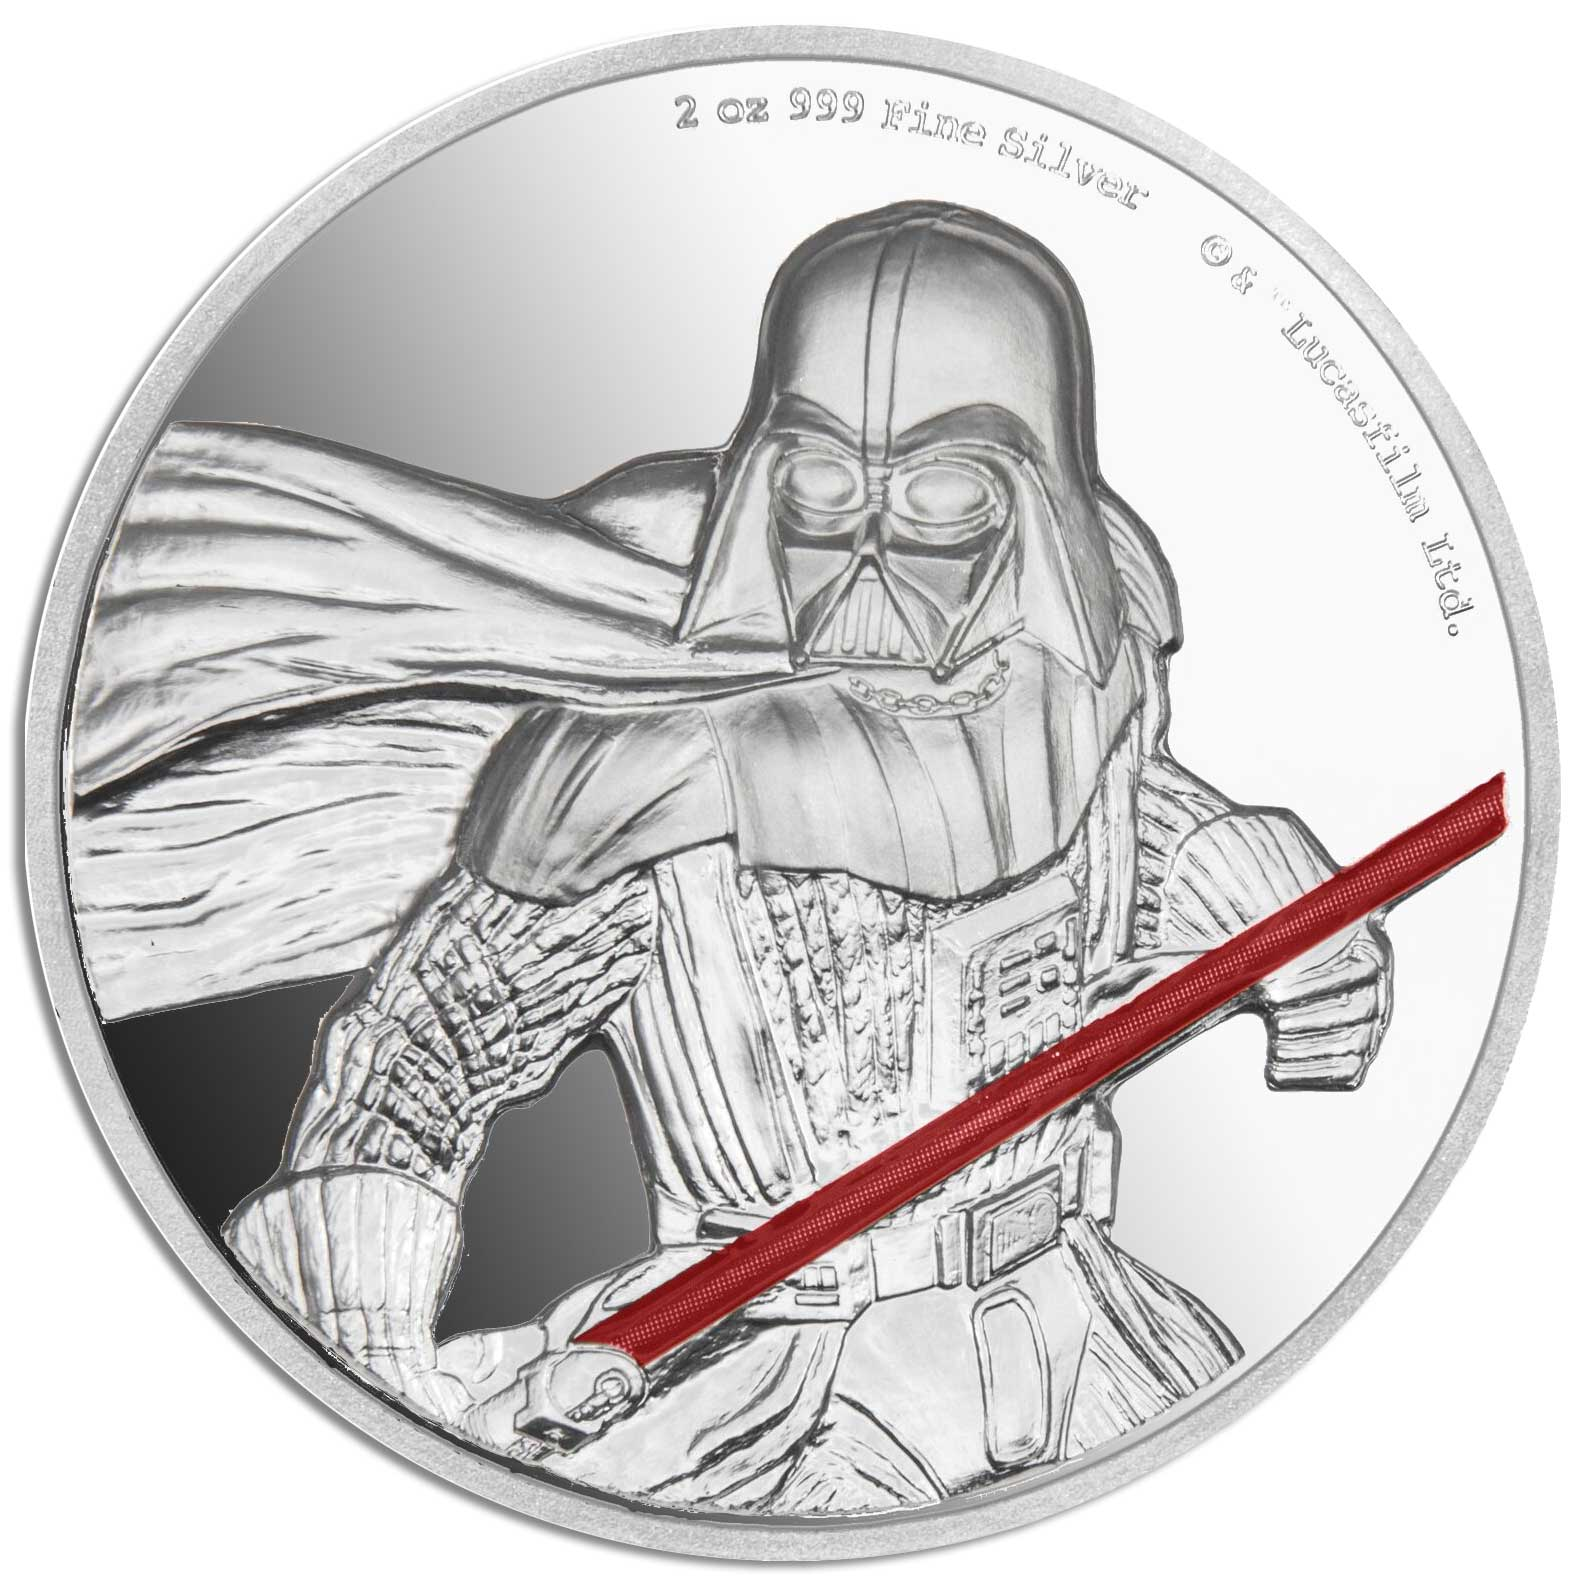 Star Wars Darth Vader 2017 Niue High Relief 2oz Silver